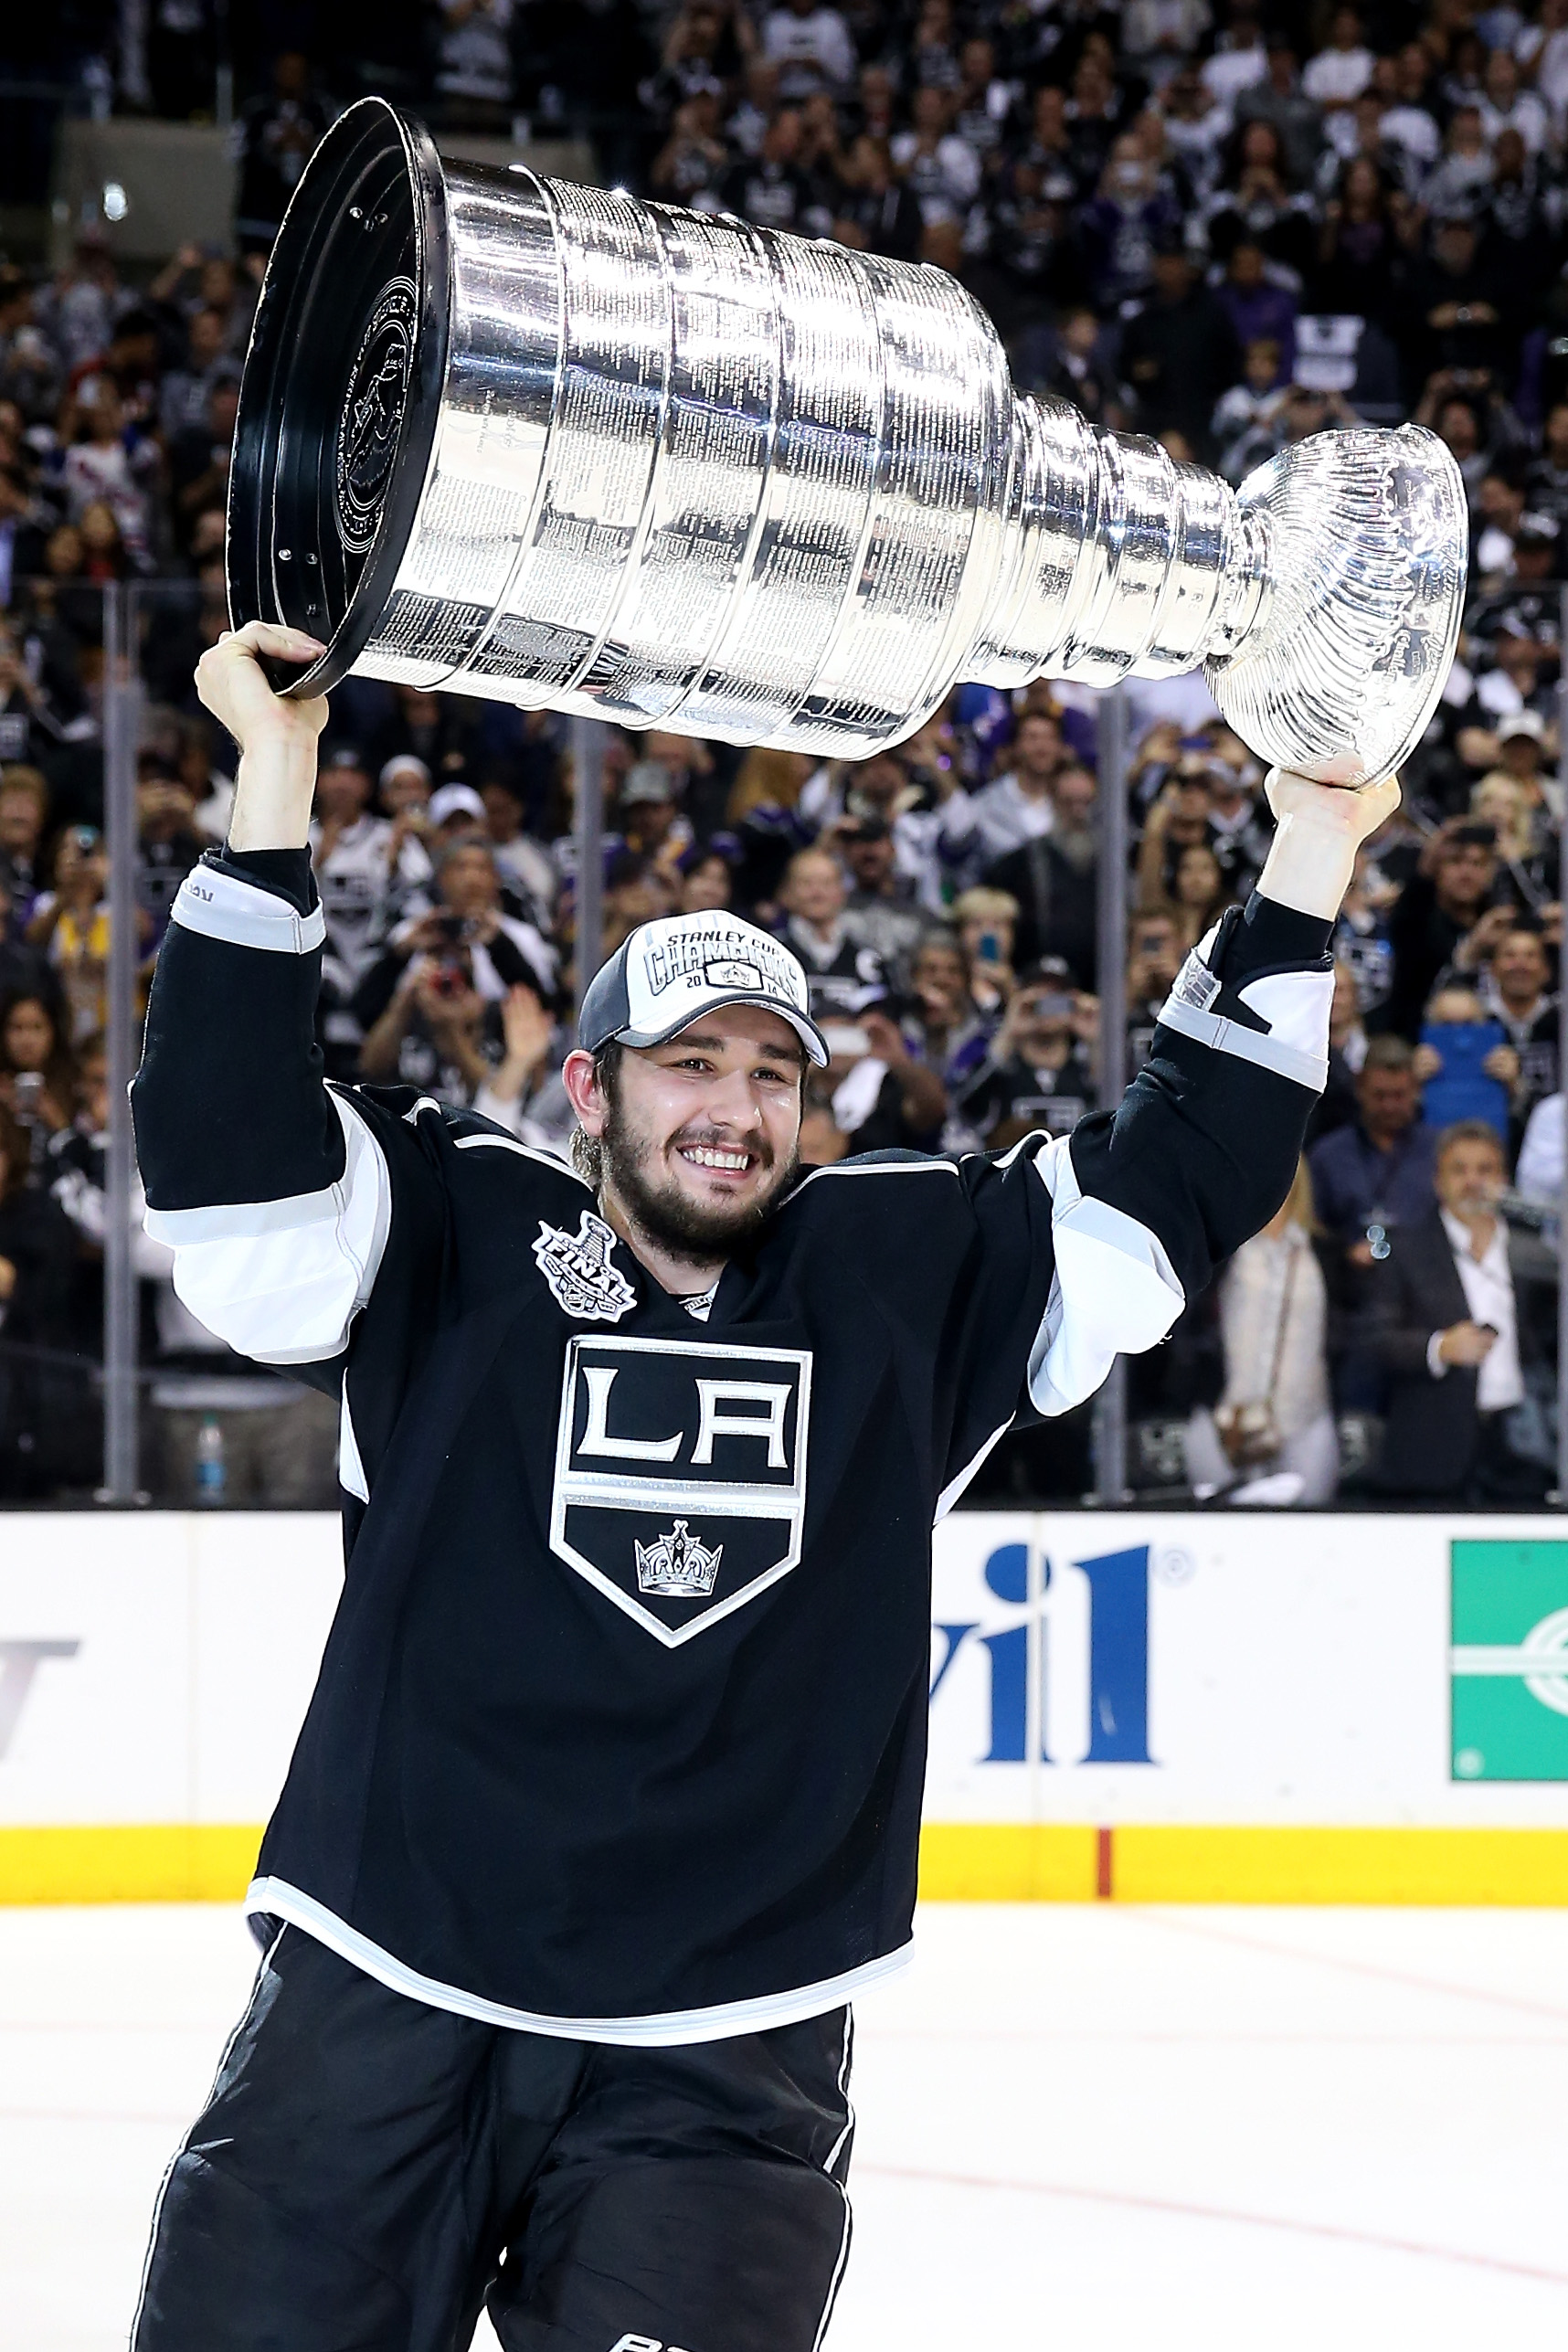 Slava Voynov of the Los Angeles Kings celebrates with the Stanley Cup after the Kings 3-2 double overtime victory against the New York Rangers in Game Five of the 2014 Stanley Cup Final at Staples Center on June 13, 2014 in Los Angeles.